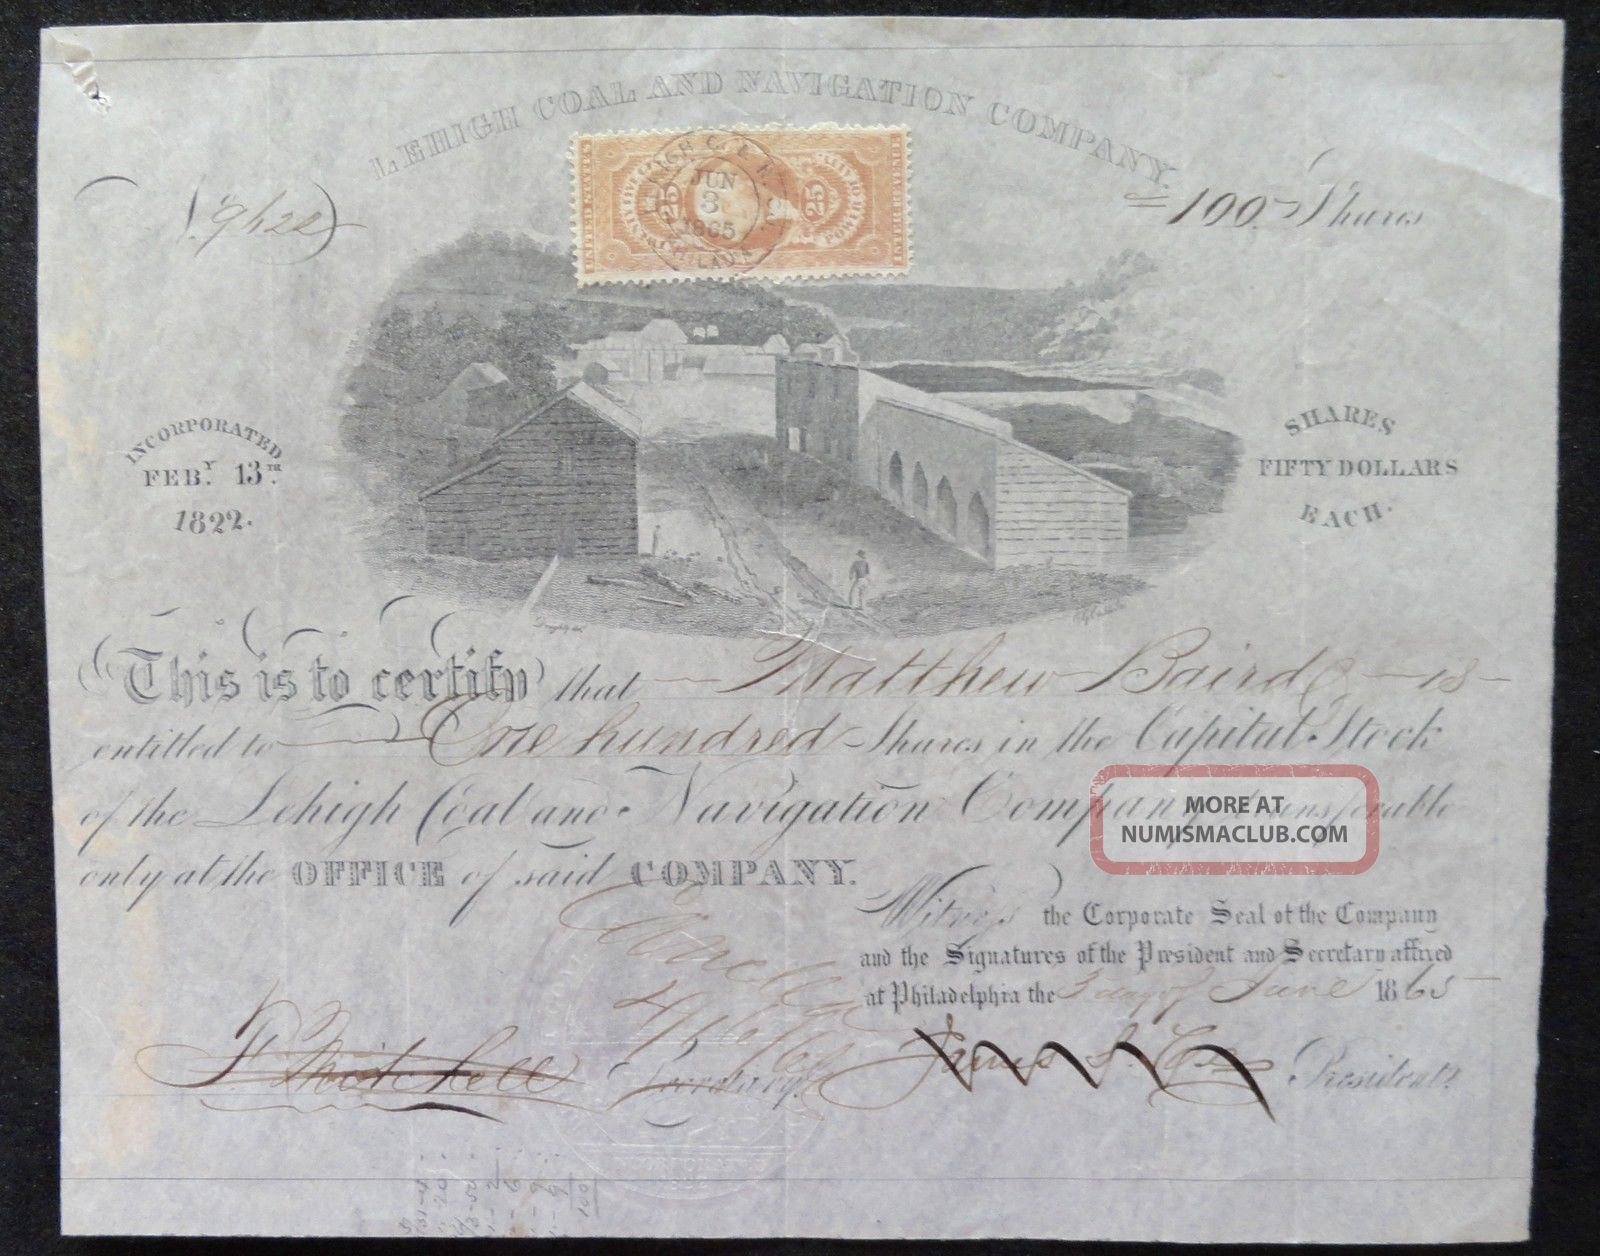 1865 Stock Certificate - Lehigh Coal & Navigation Co.  - June 3,  1865 (100 Shares) Stocks & Bonds, Scripophily photo